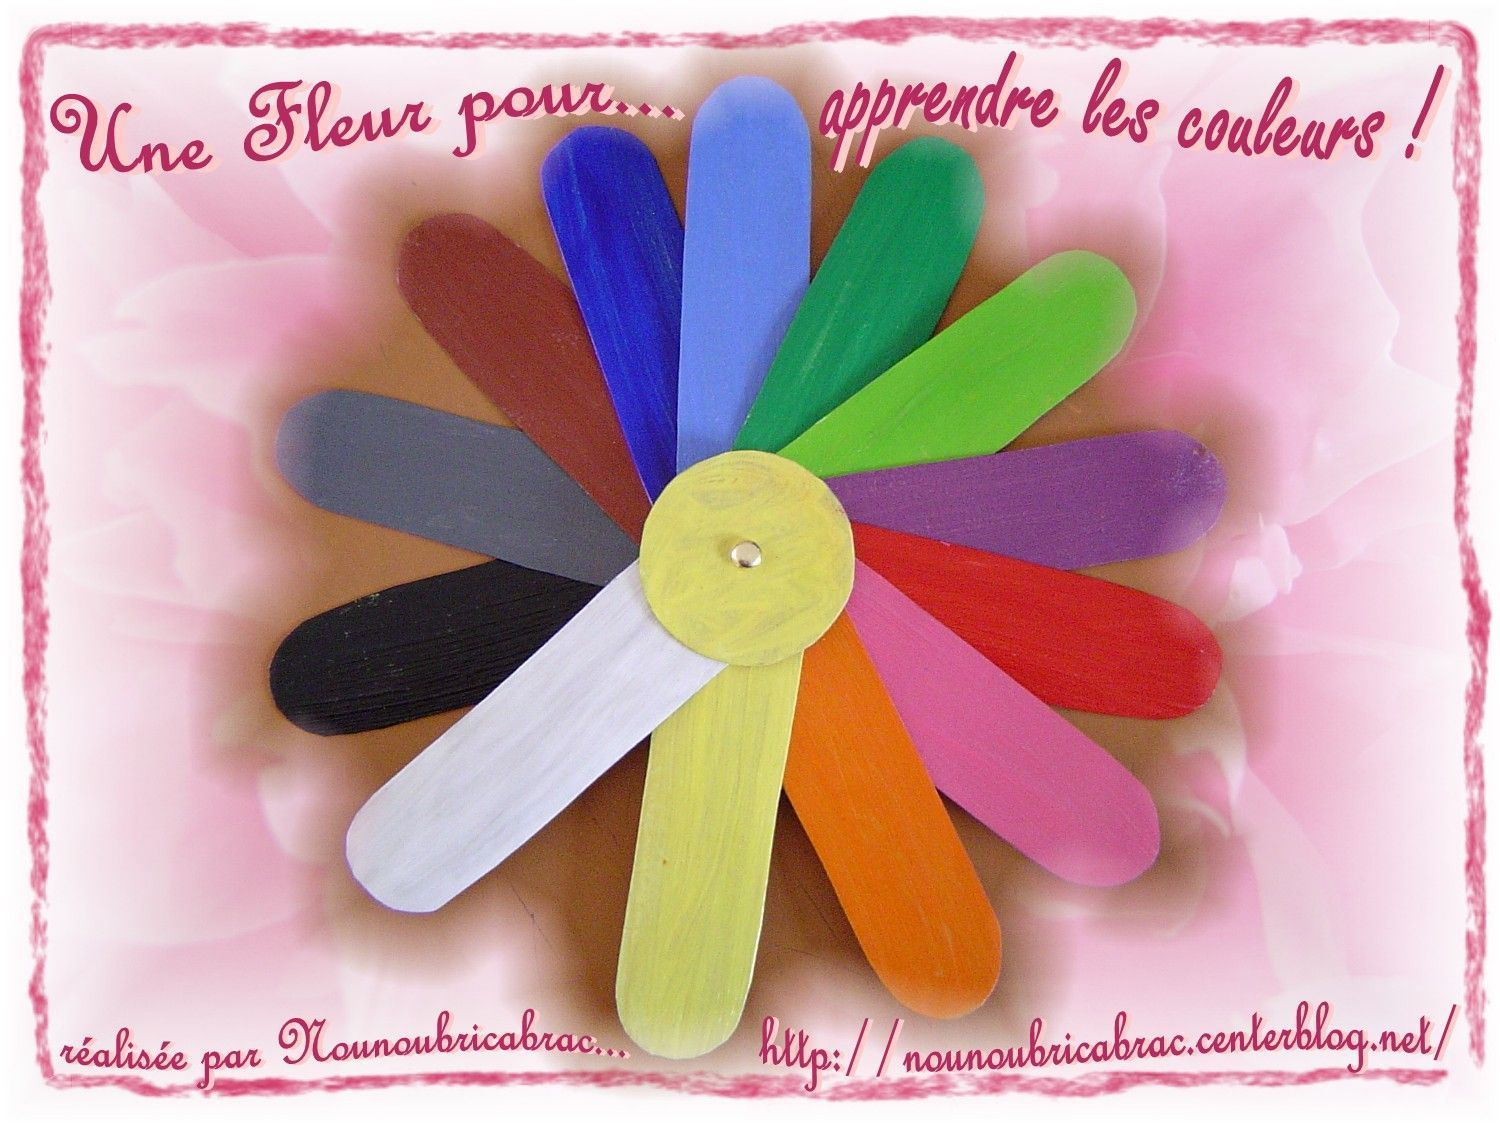 Une Fleur pour Apprendre les couleurs !!!